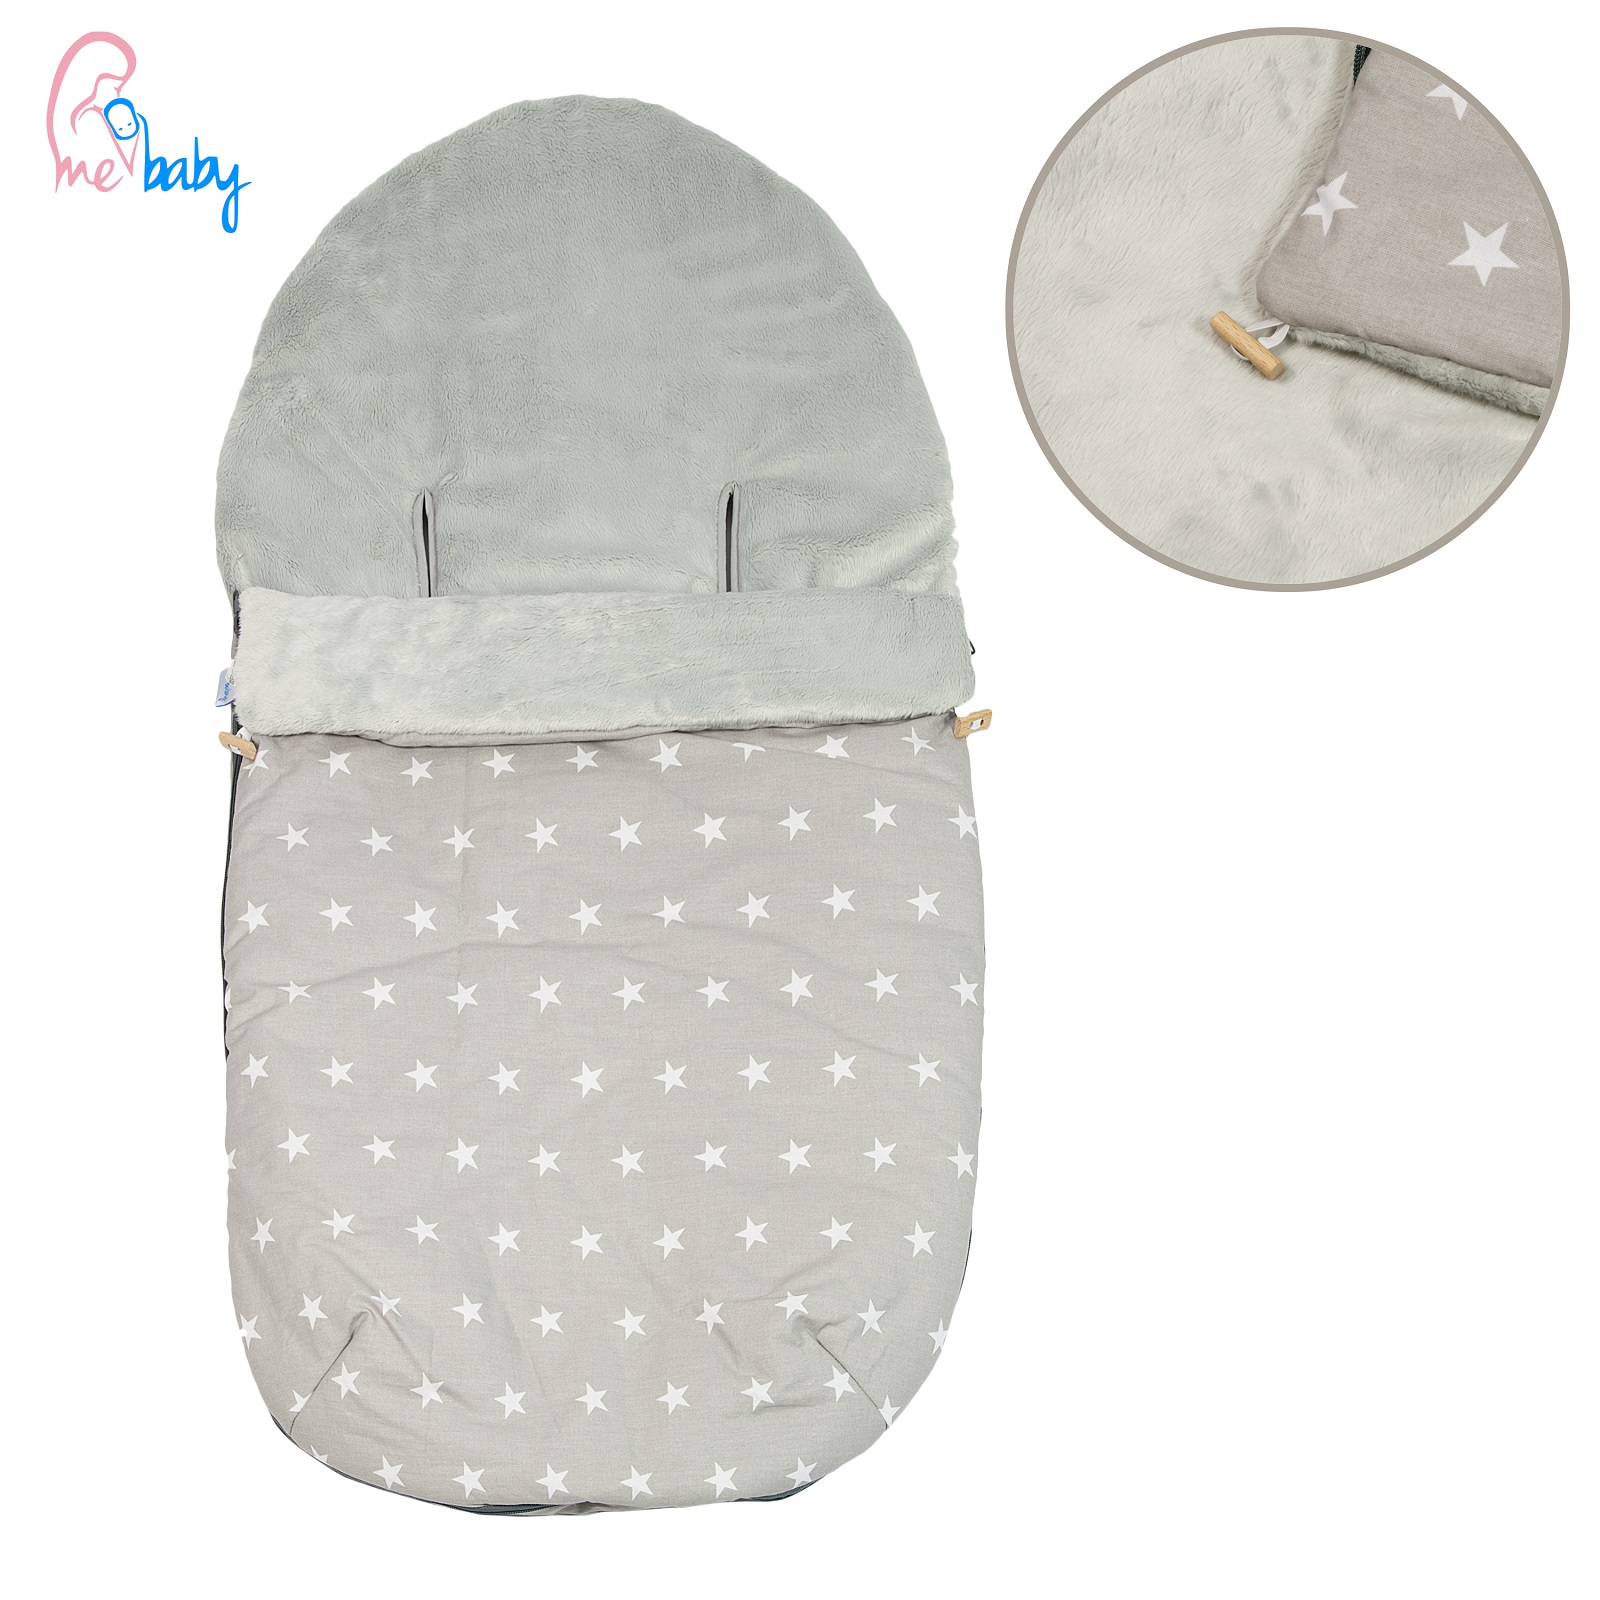 Soft Footmuff for your sweet baby